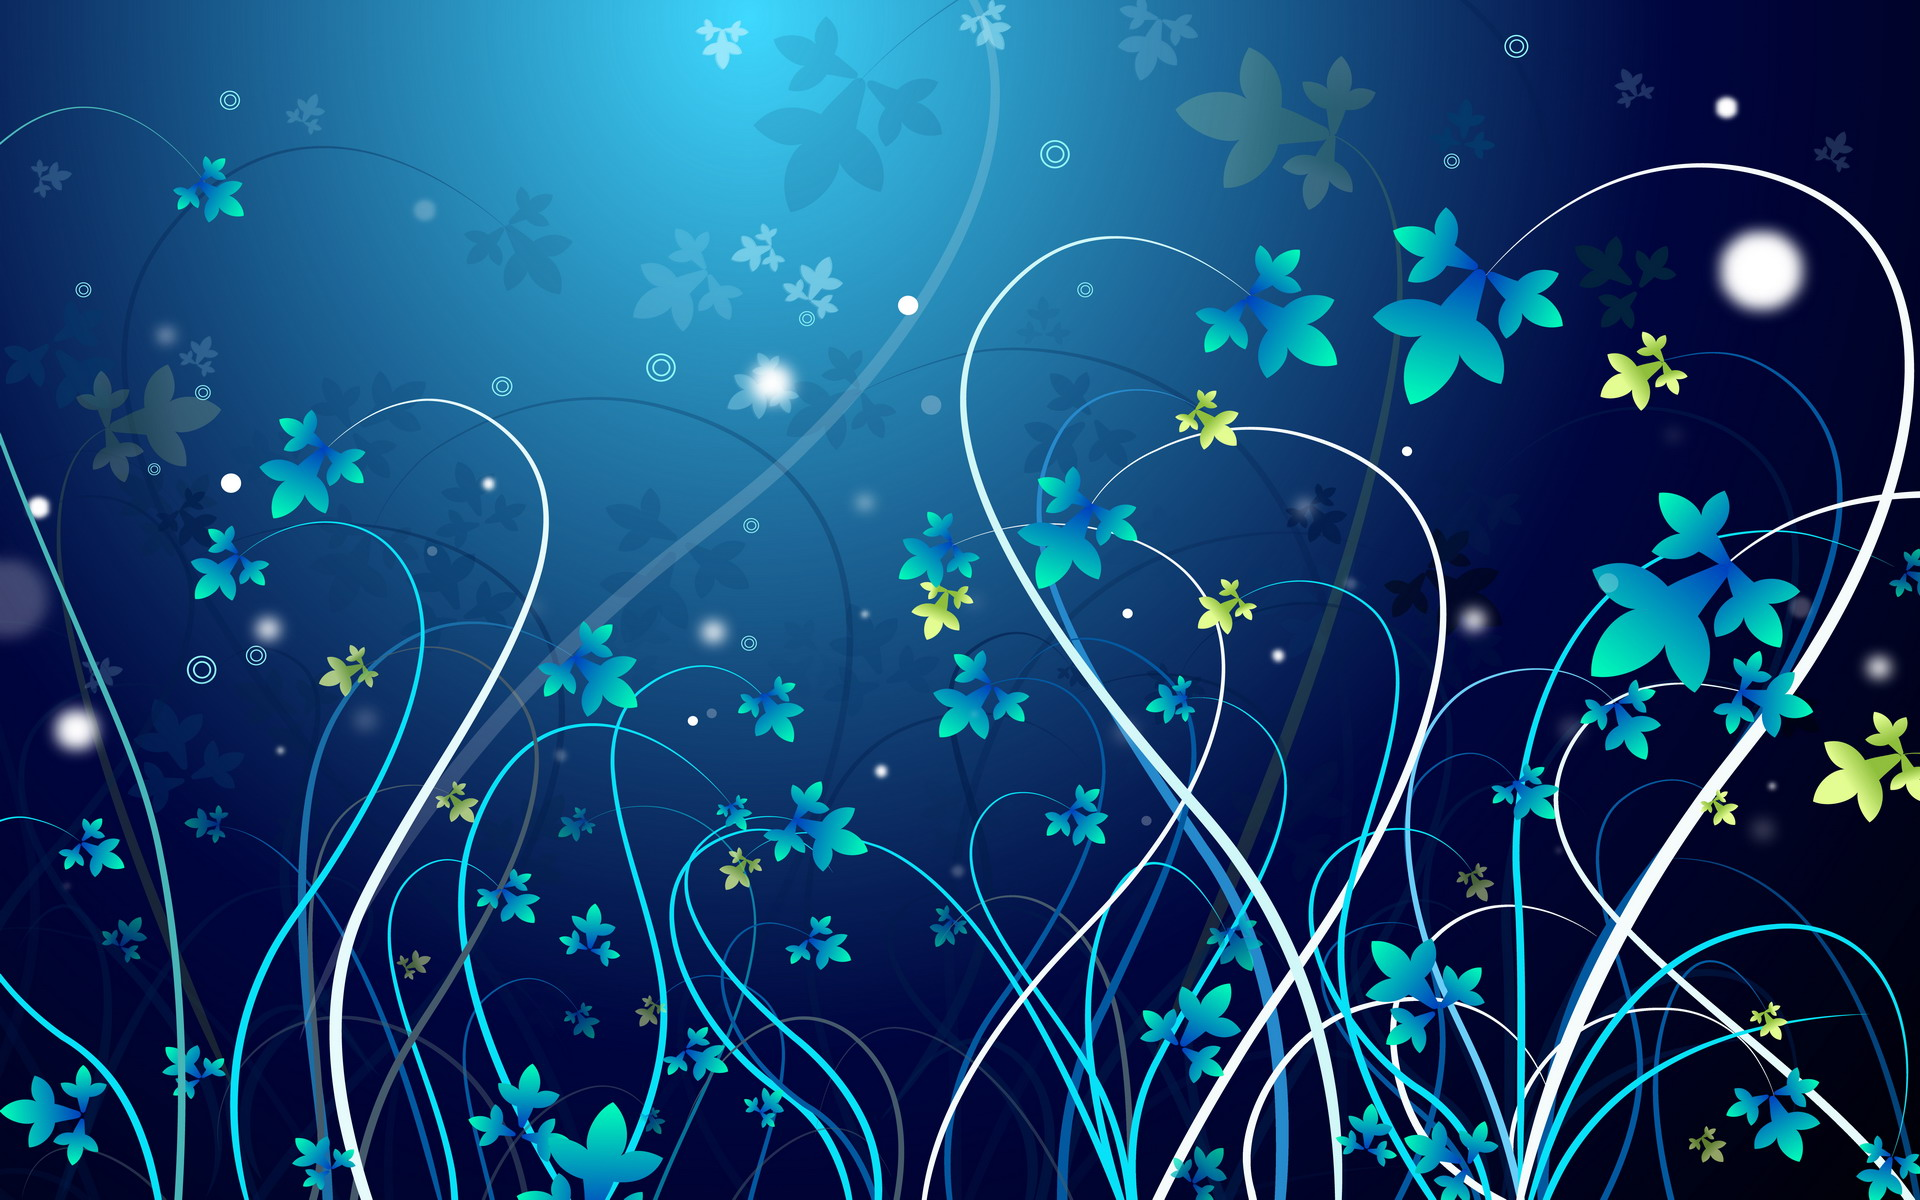 Beautiful ornament of vector blue flowers on a blue background